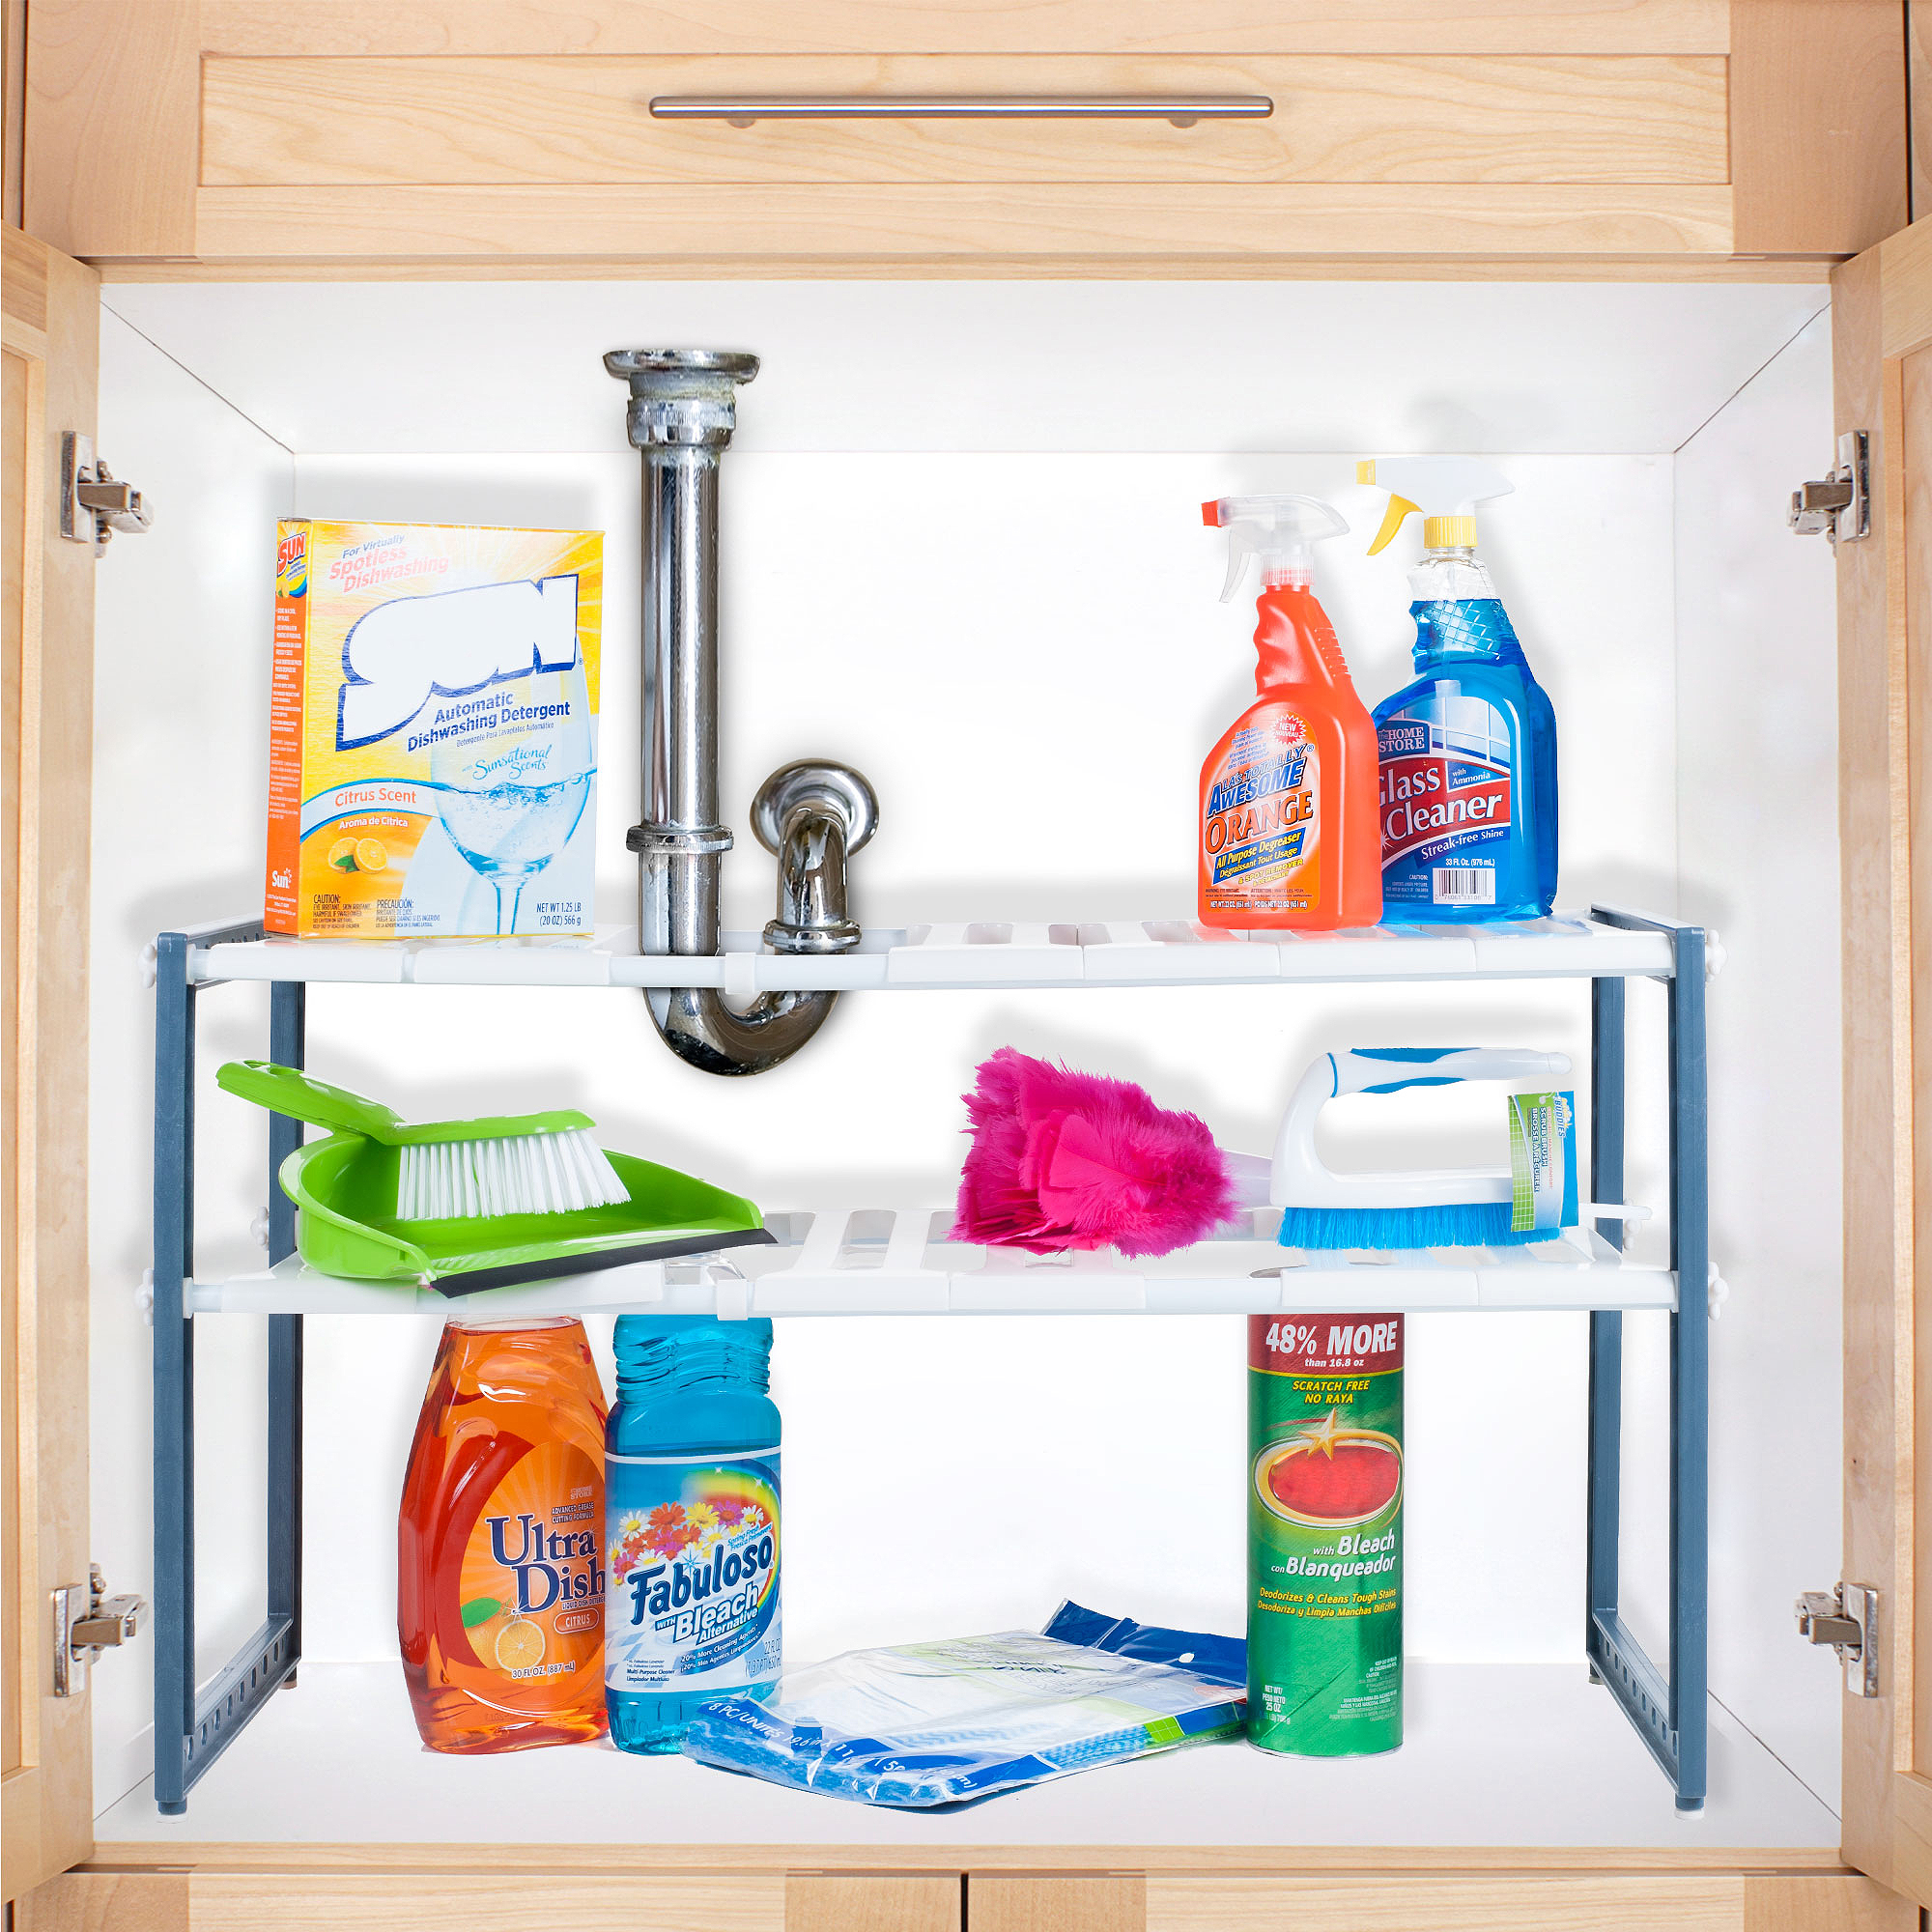 2 Tier Expandable Adjustable Under Sink Shelf Organizer Unit